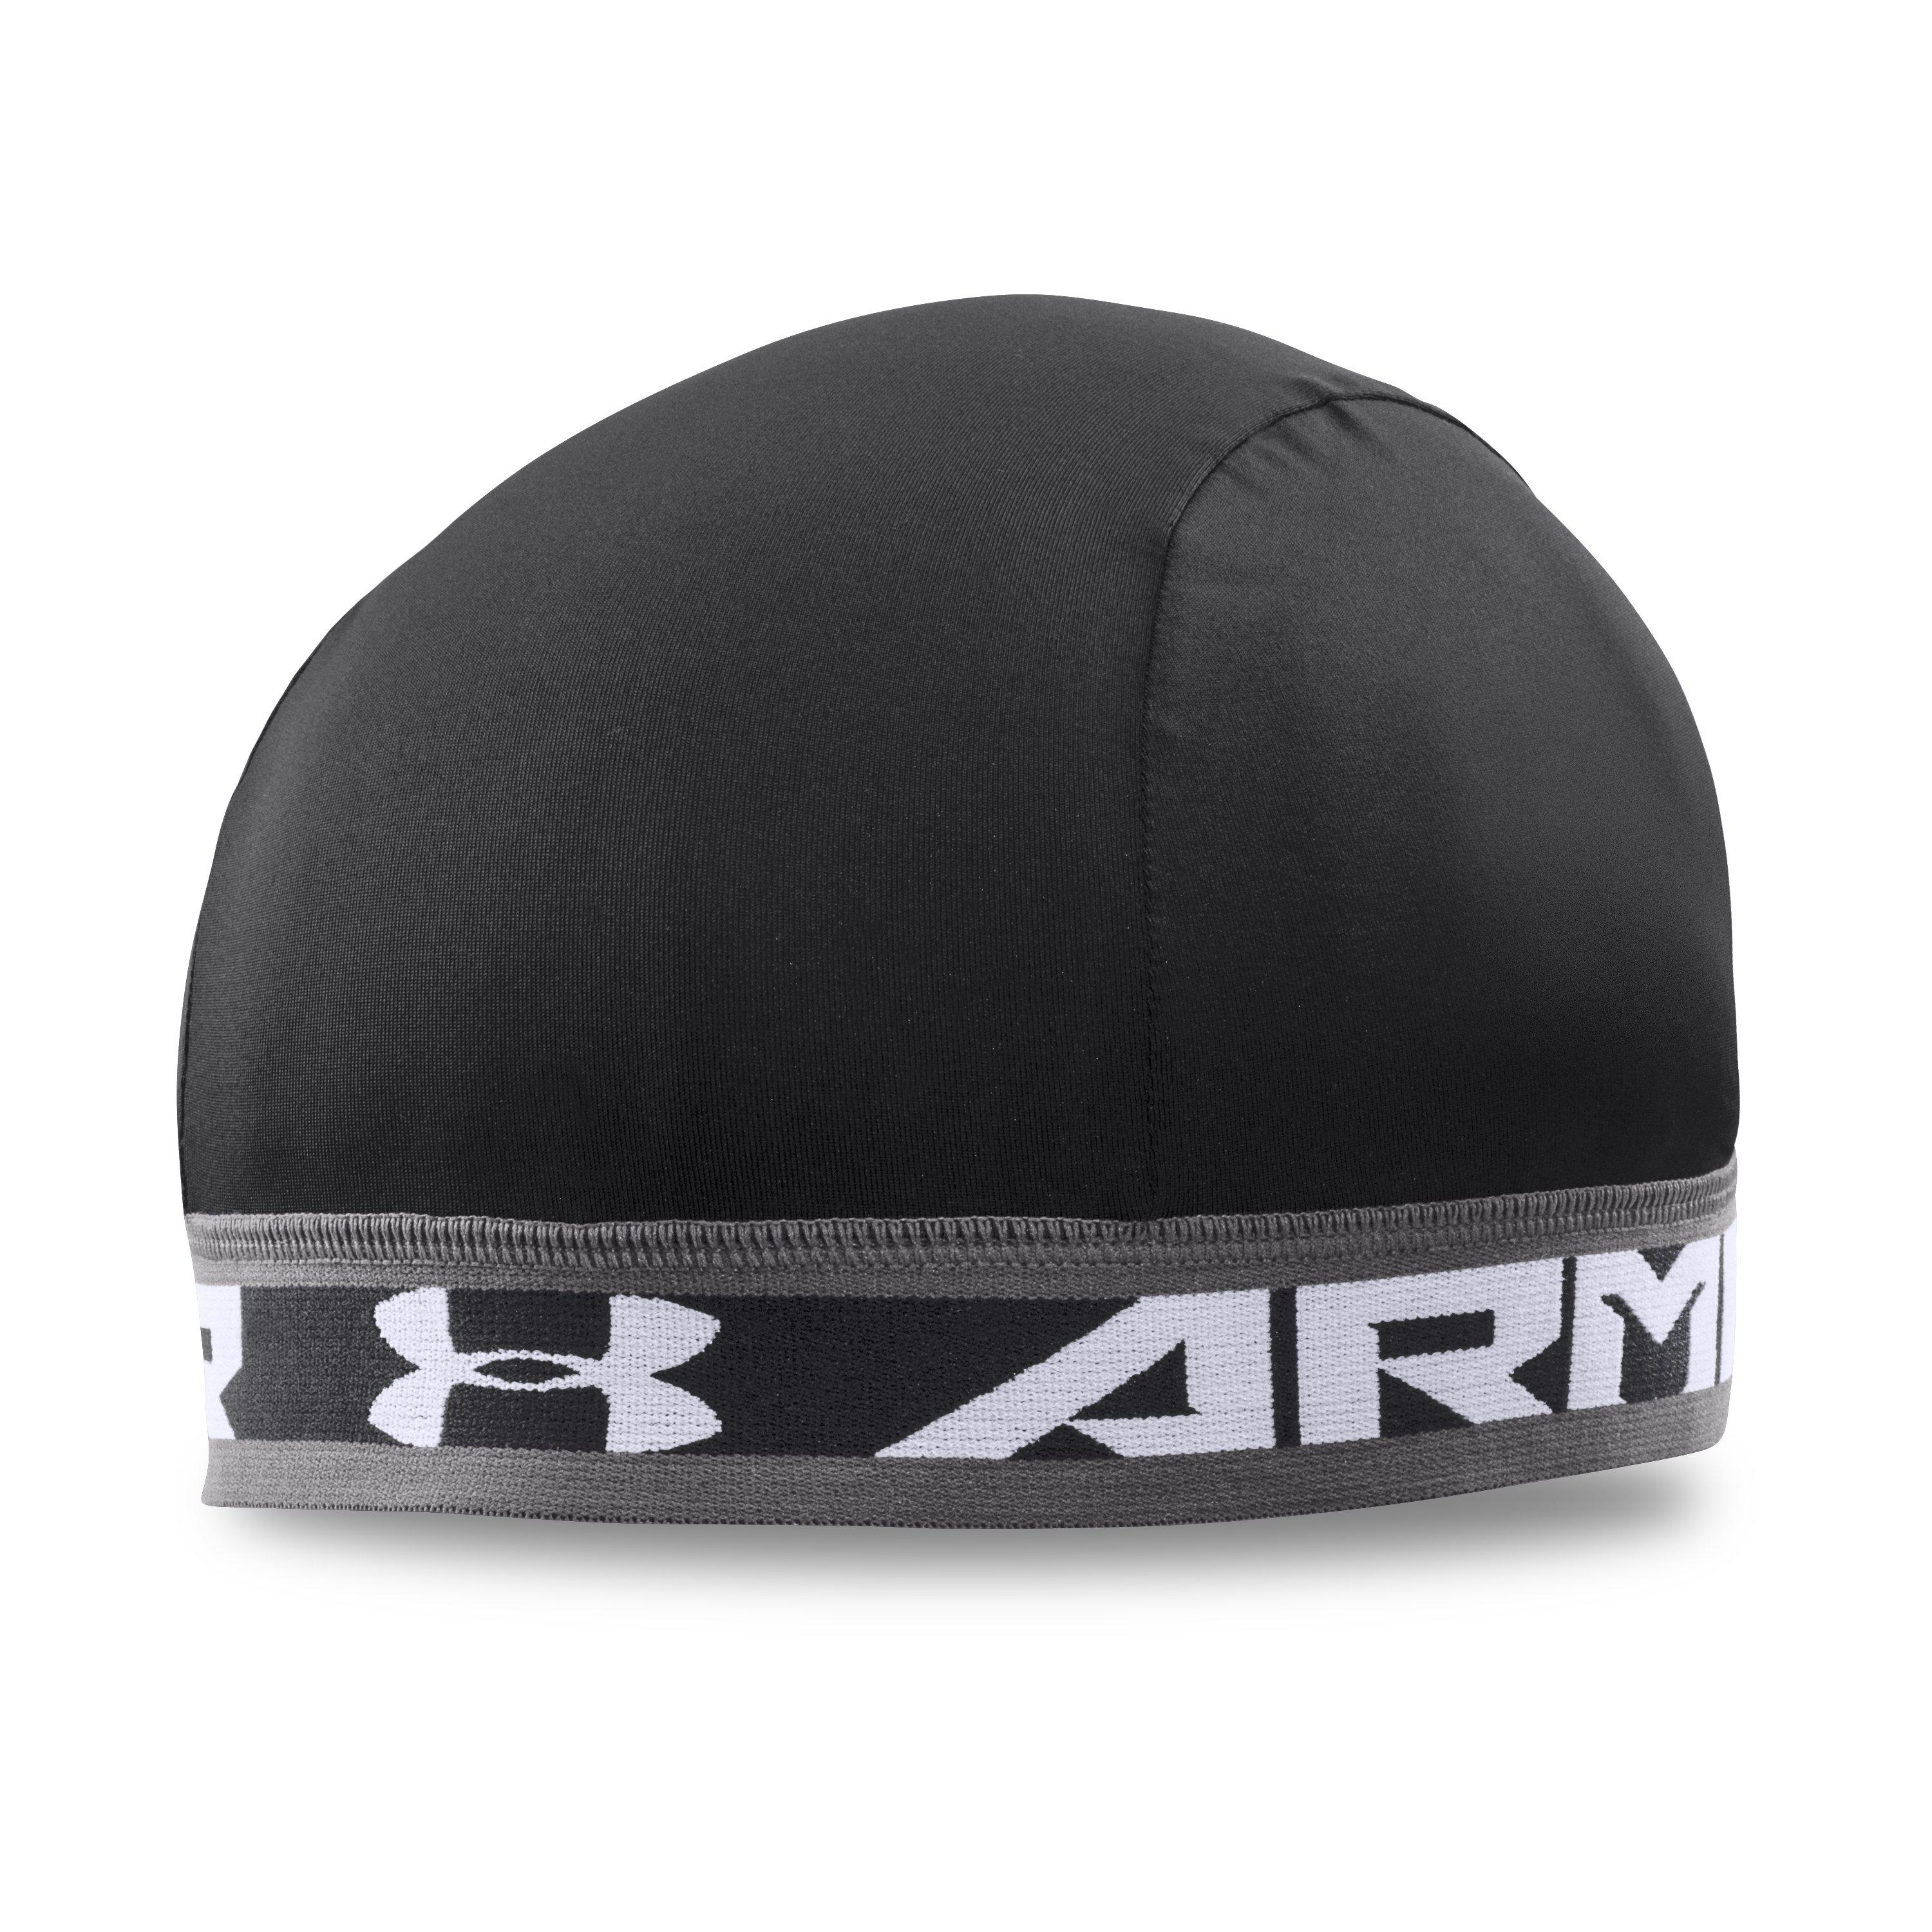 cheap for discount bb7fa 45c9c Under Armour Men s Core Skull Cap   Academy